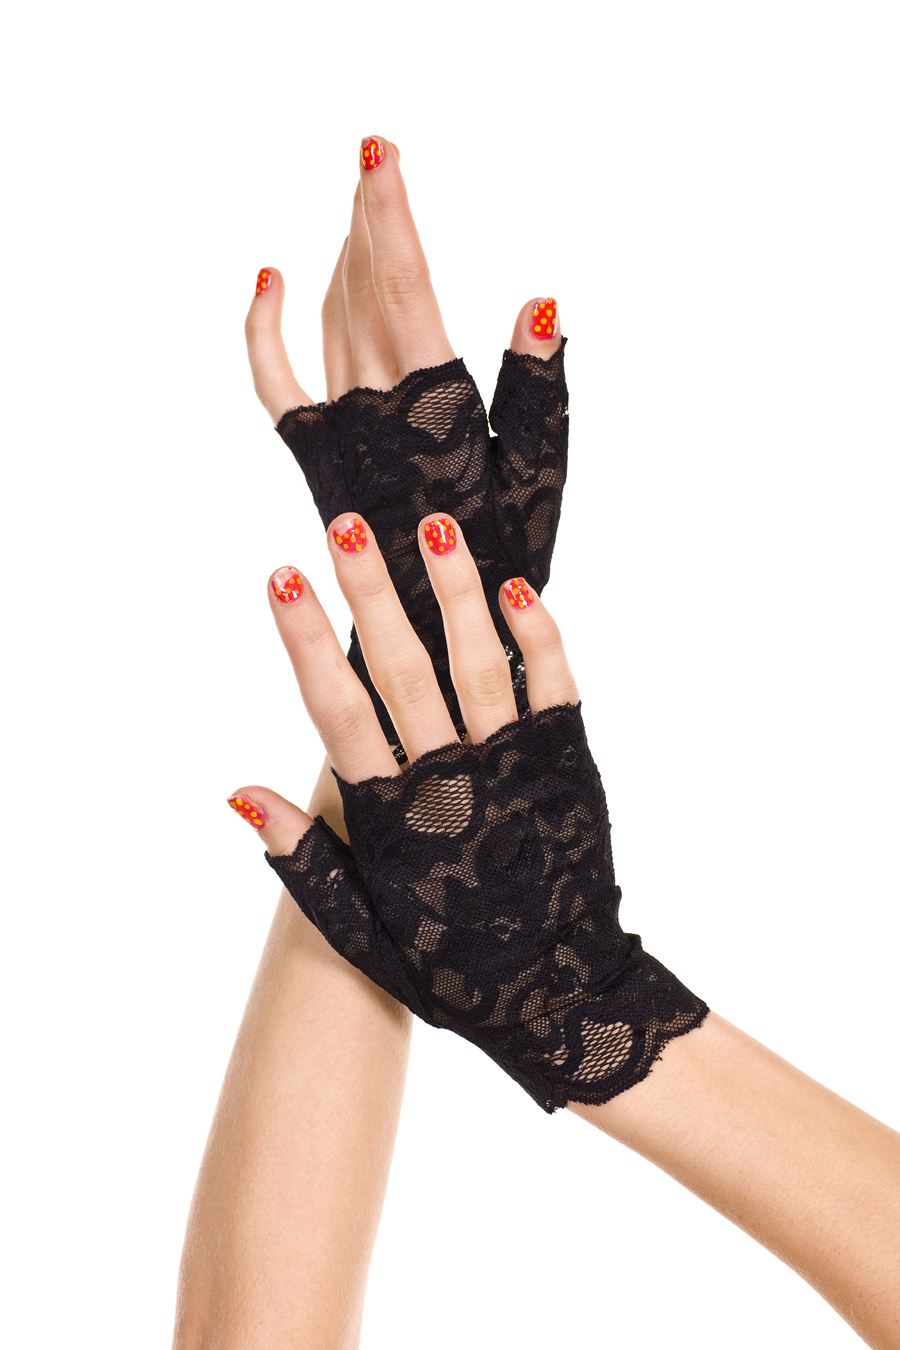 Black Fingerless Lace Gloves Wrist Length 0416 Edmonton